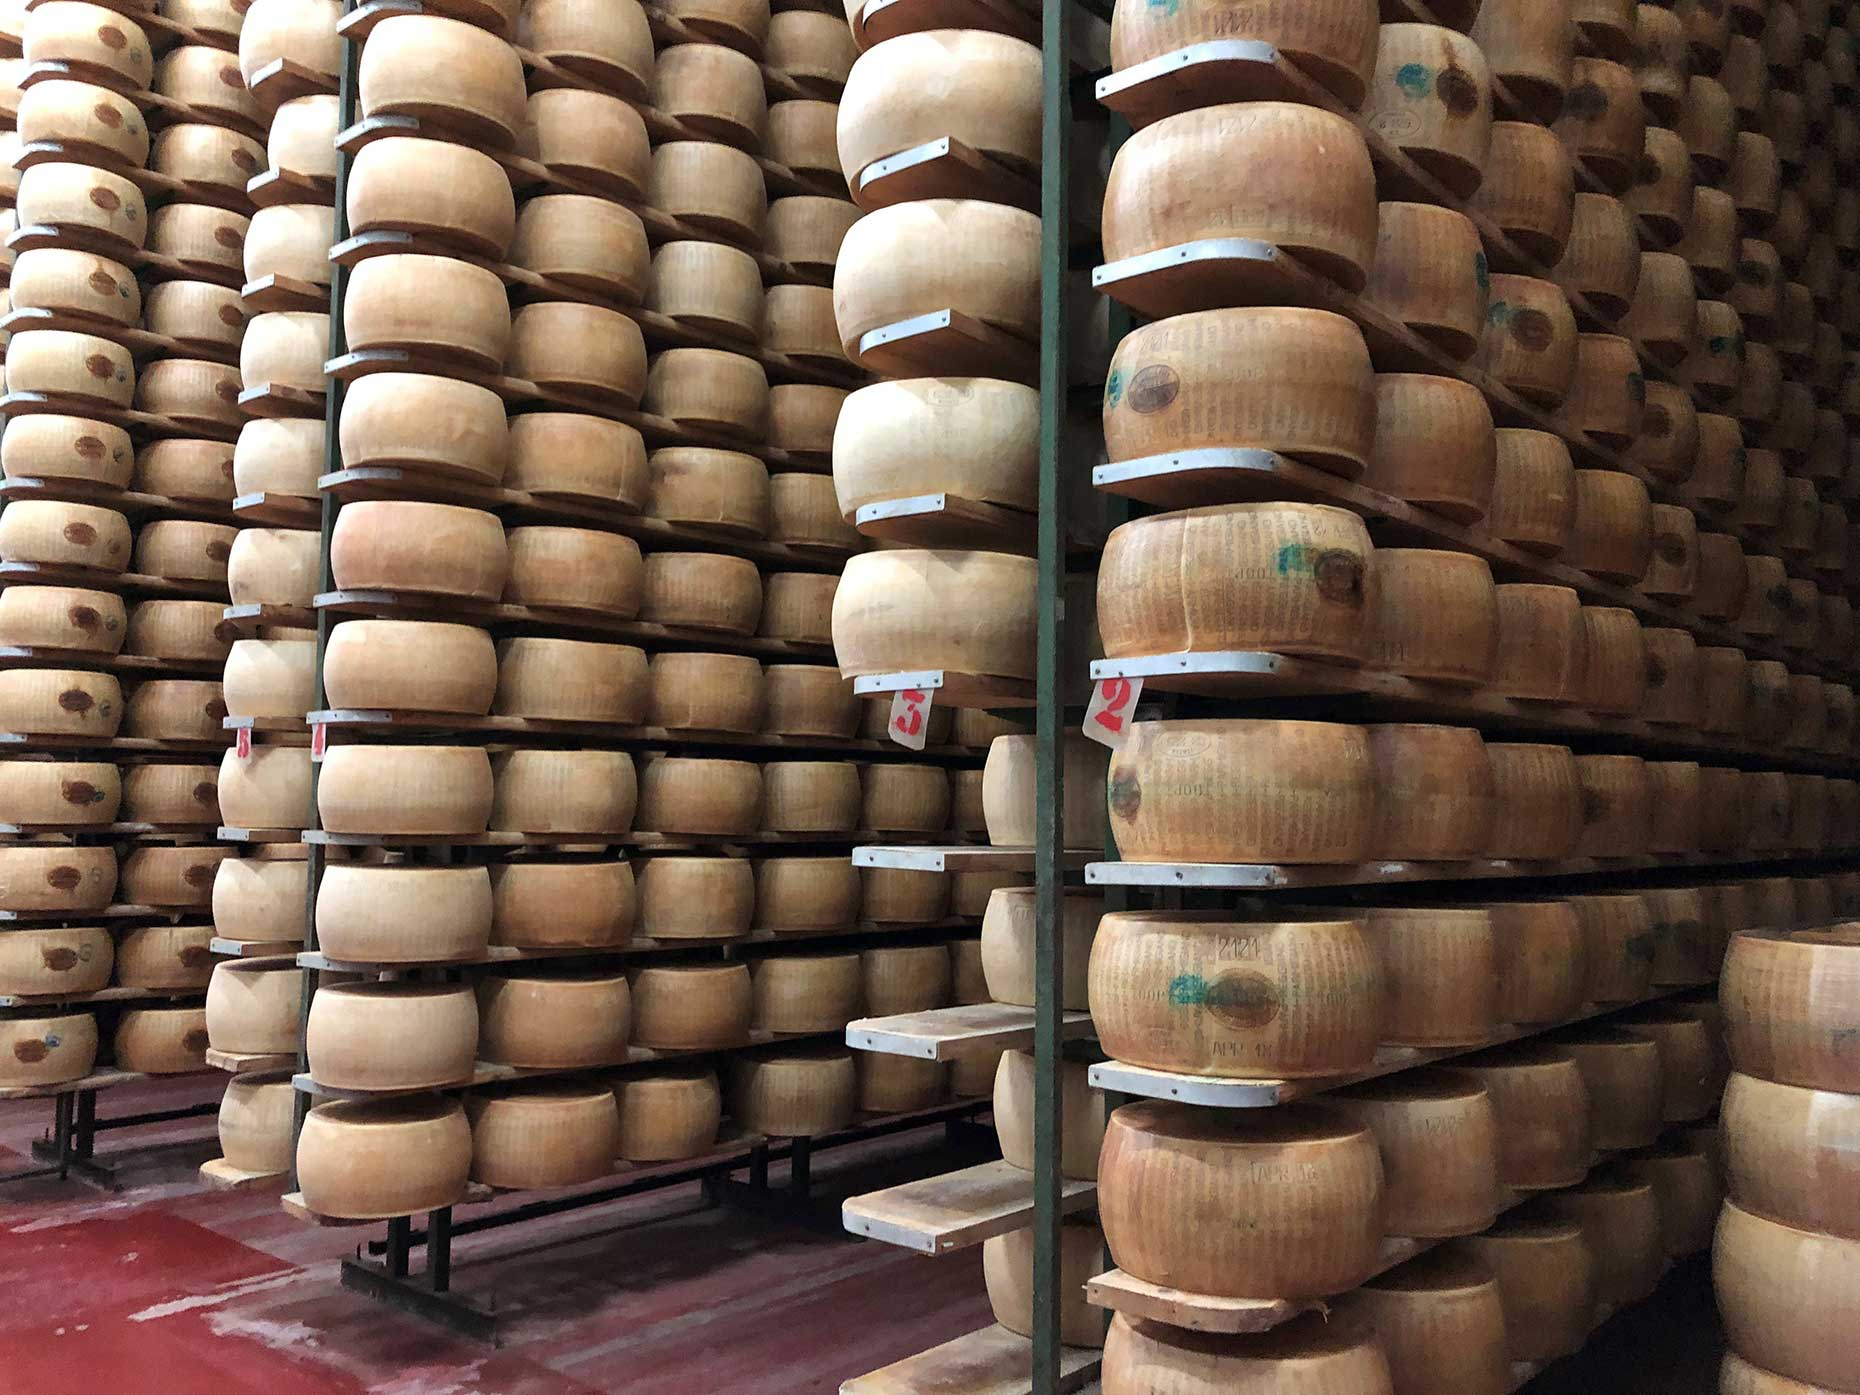 Parmesan in warehouse (Image: Daisy Meager)